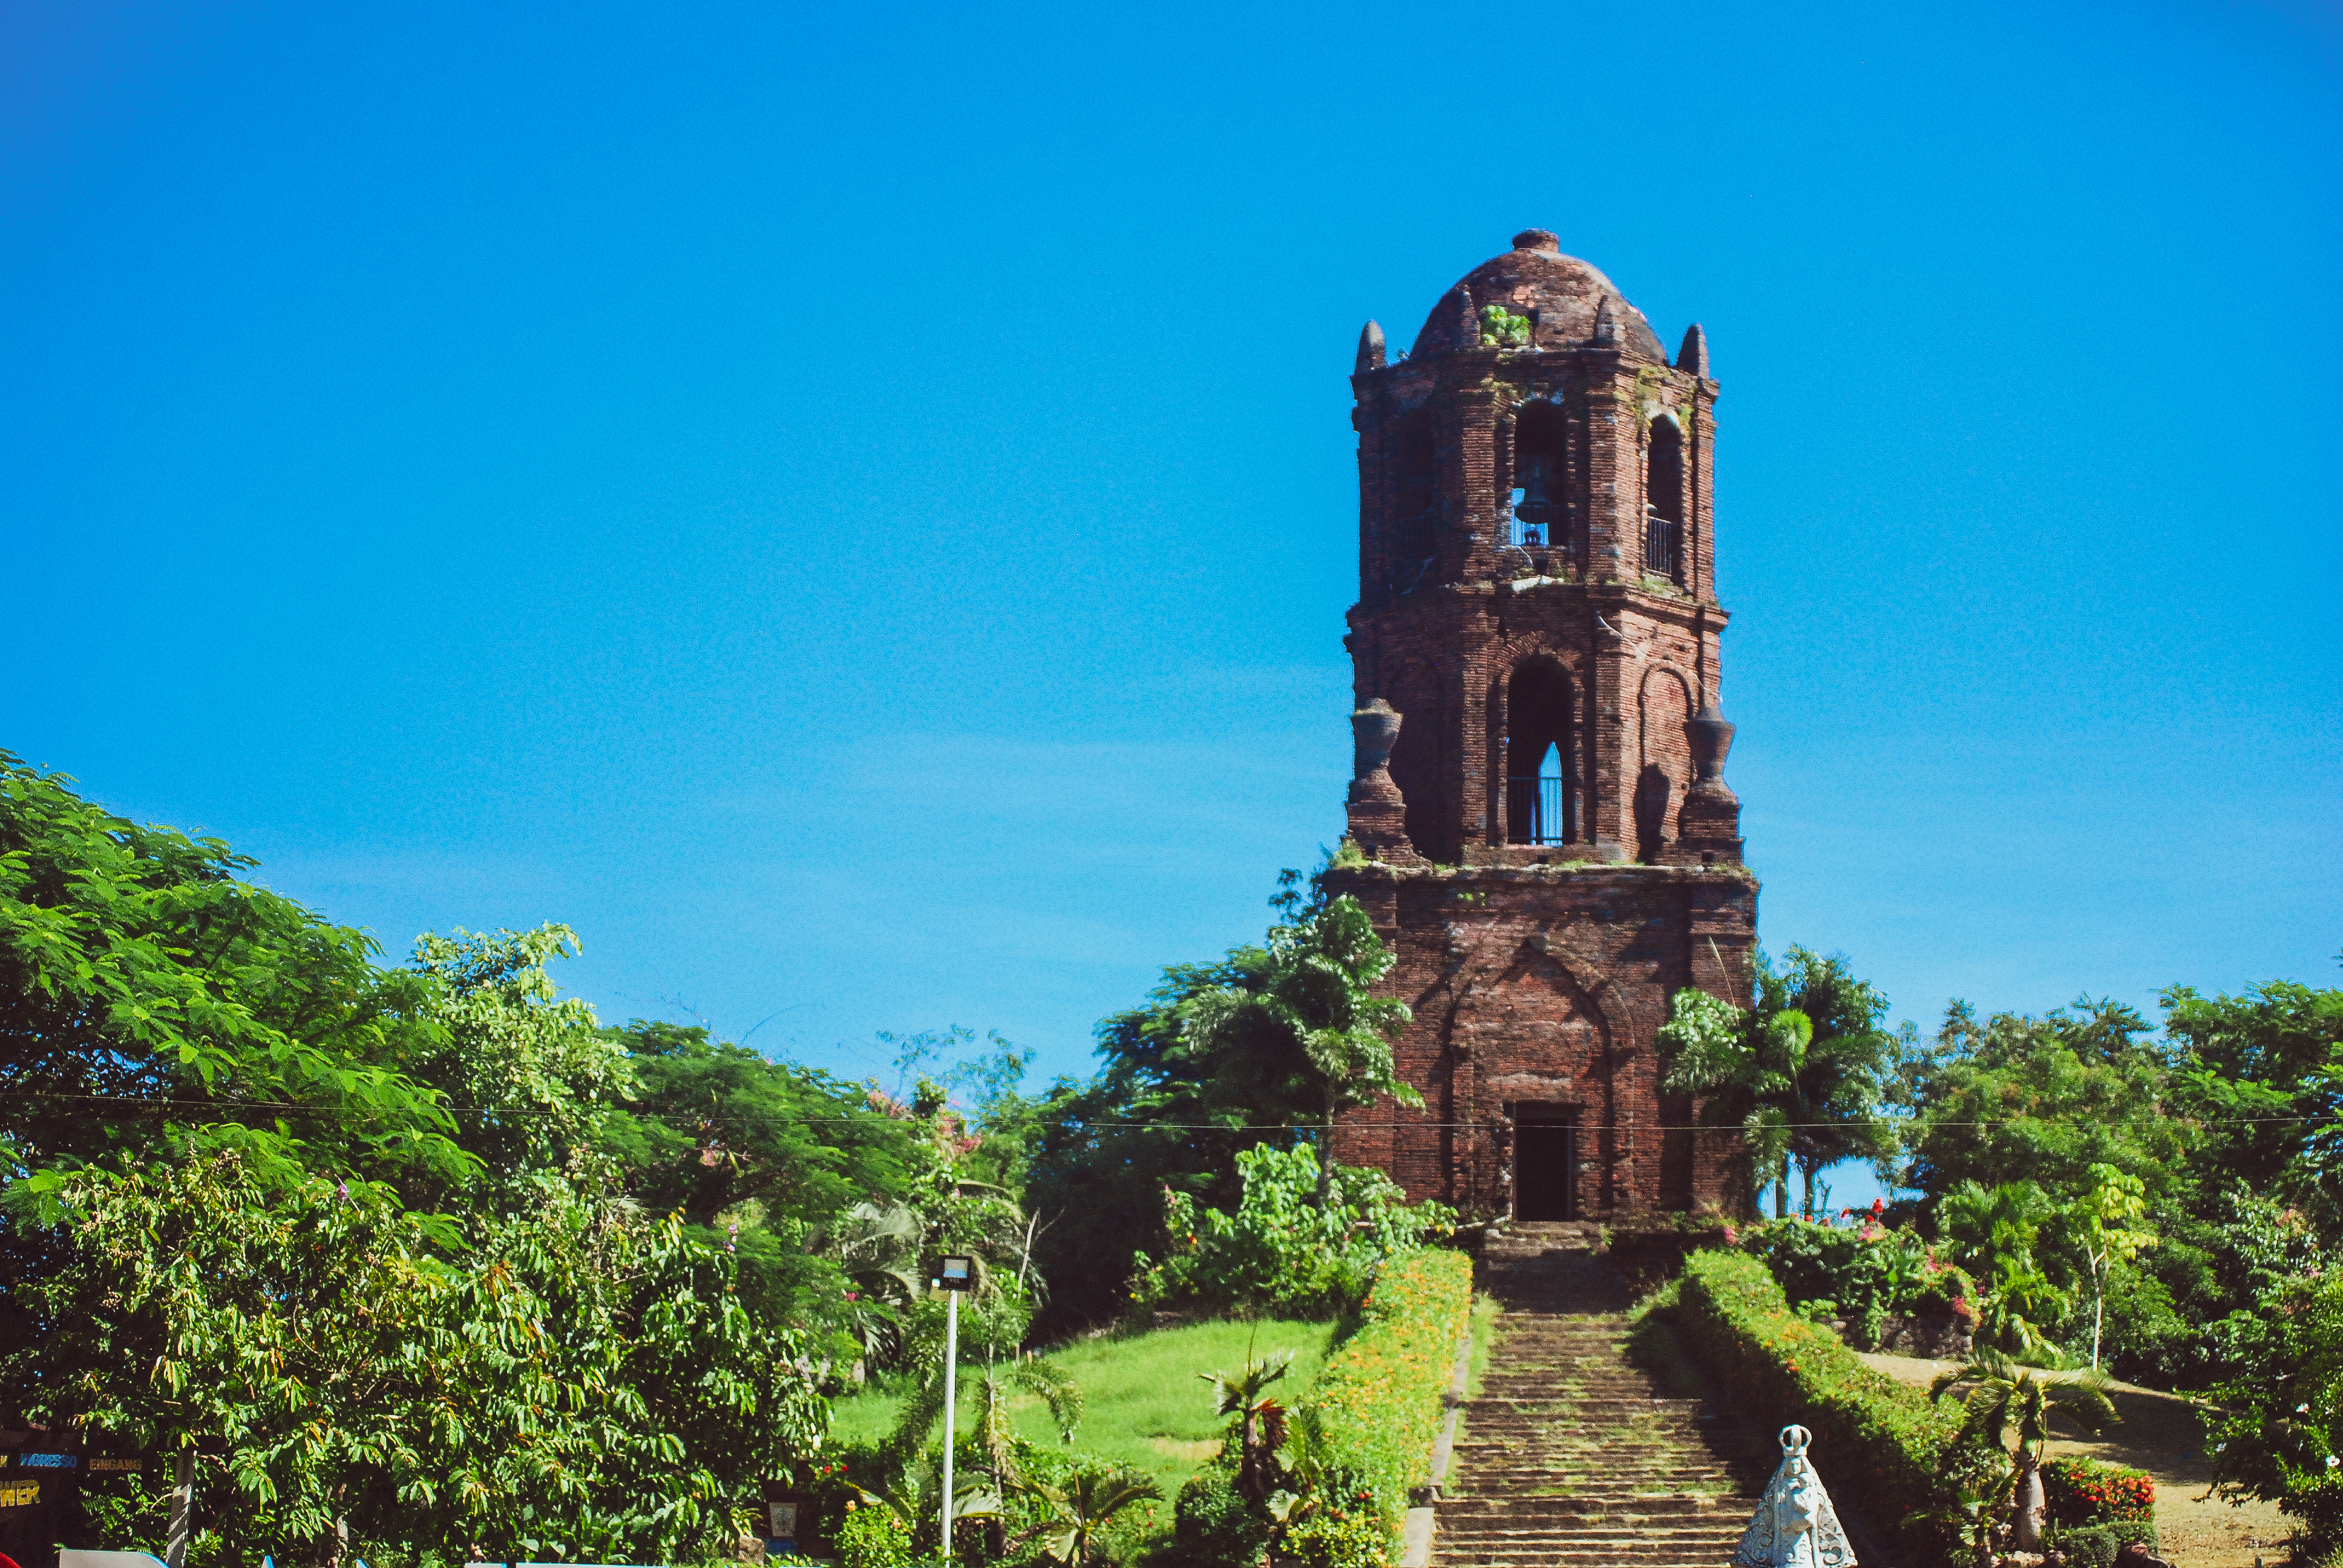 Tall structure of the Bantay Watch Tower, a popular attraction in Ilocos Sur